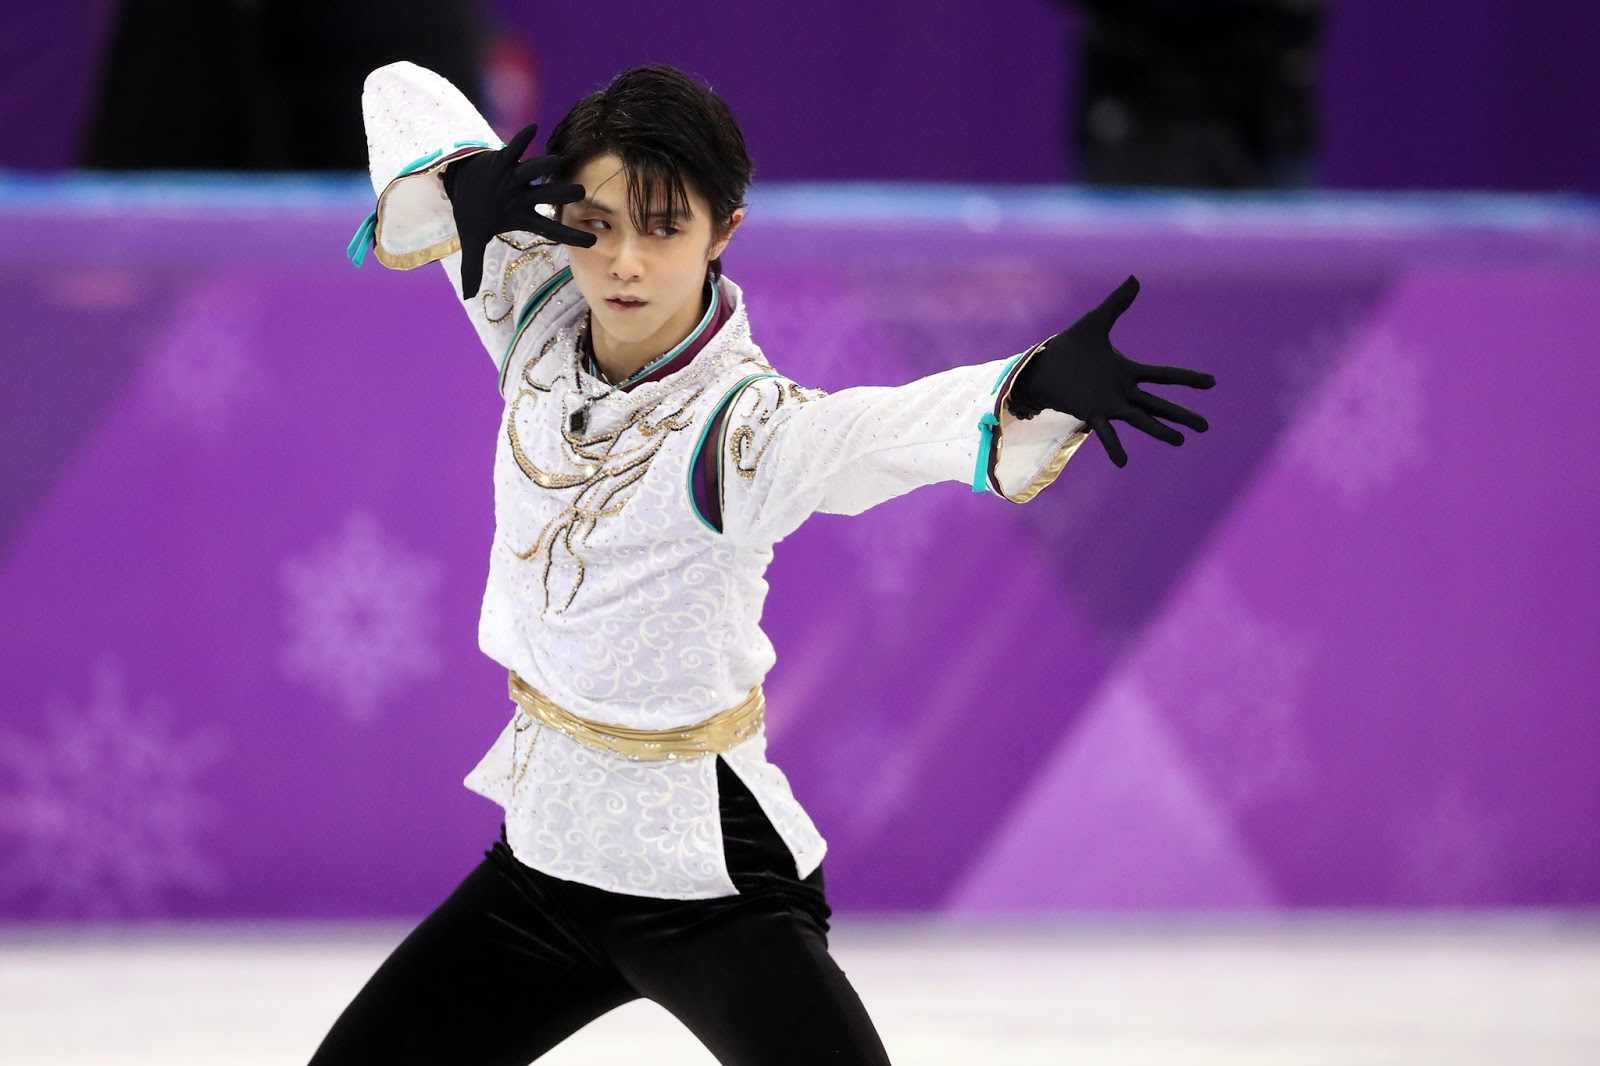 Morozombie  : Yuzuru Hanyu, 2014 and 2018 Olympic Champion